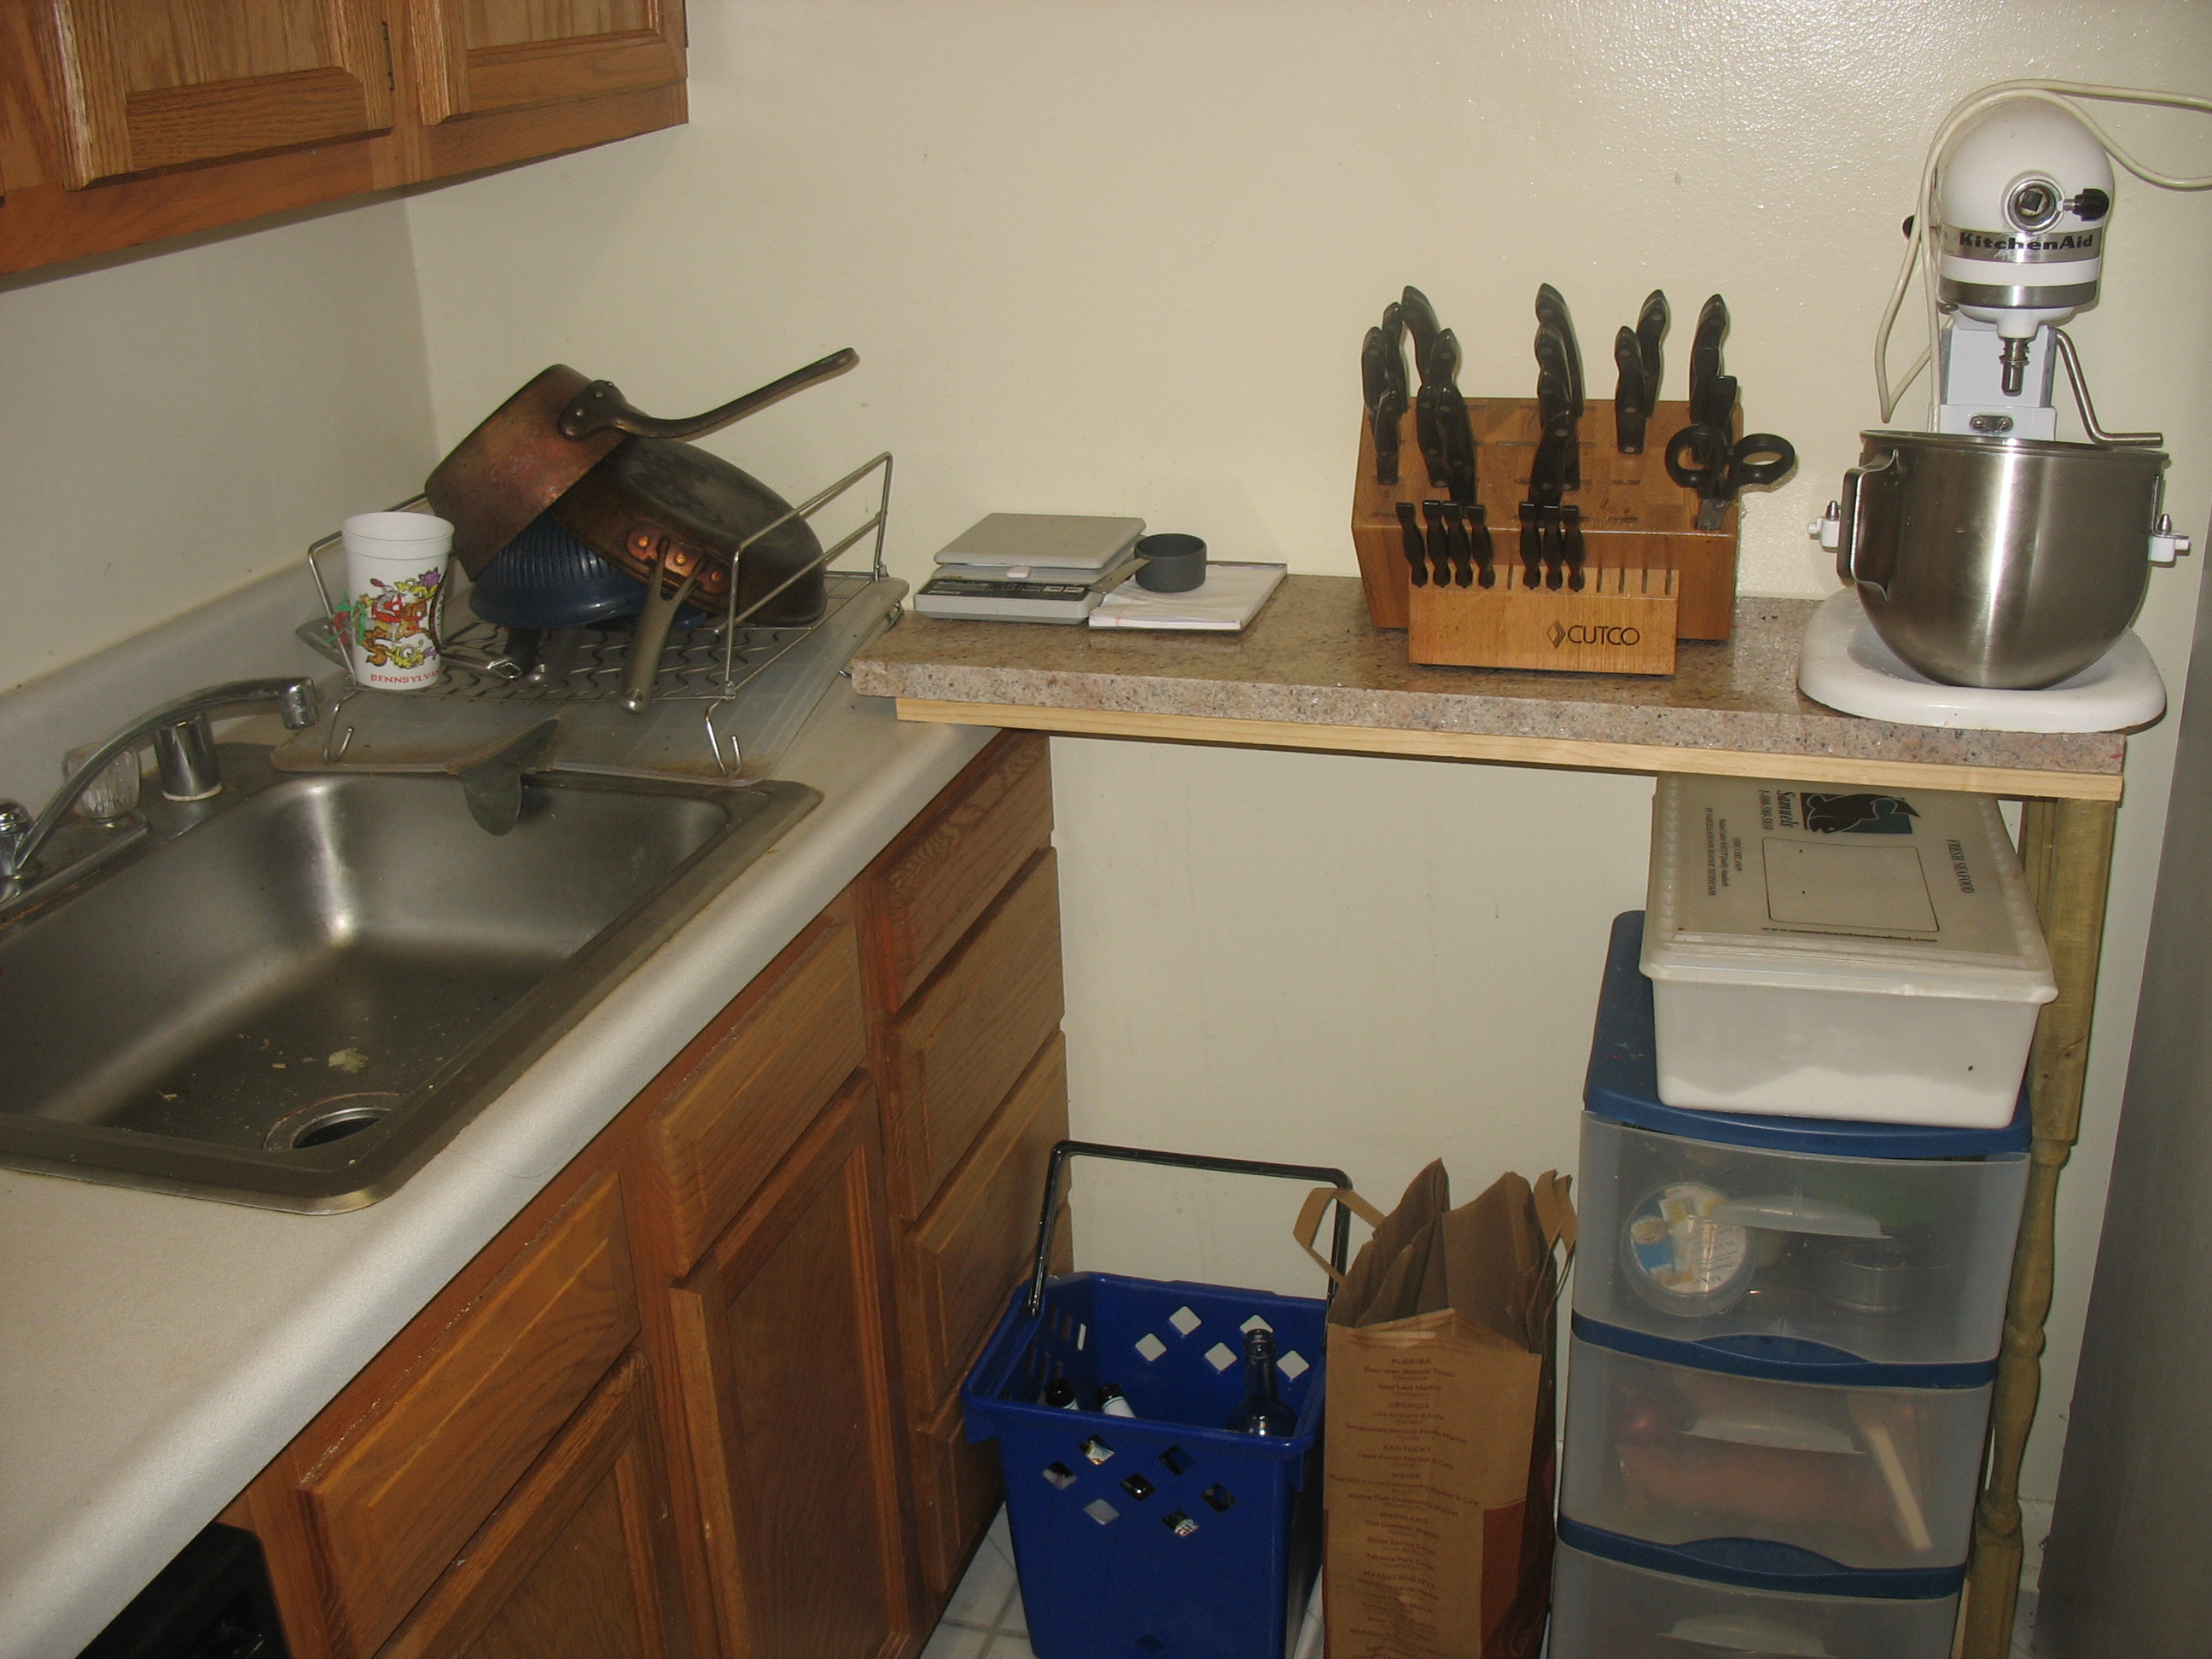 A no-nail, no lost security deposit kitchen counter extension for renters